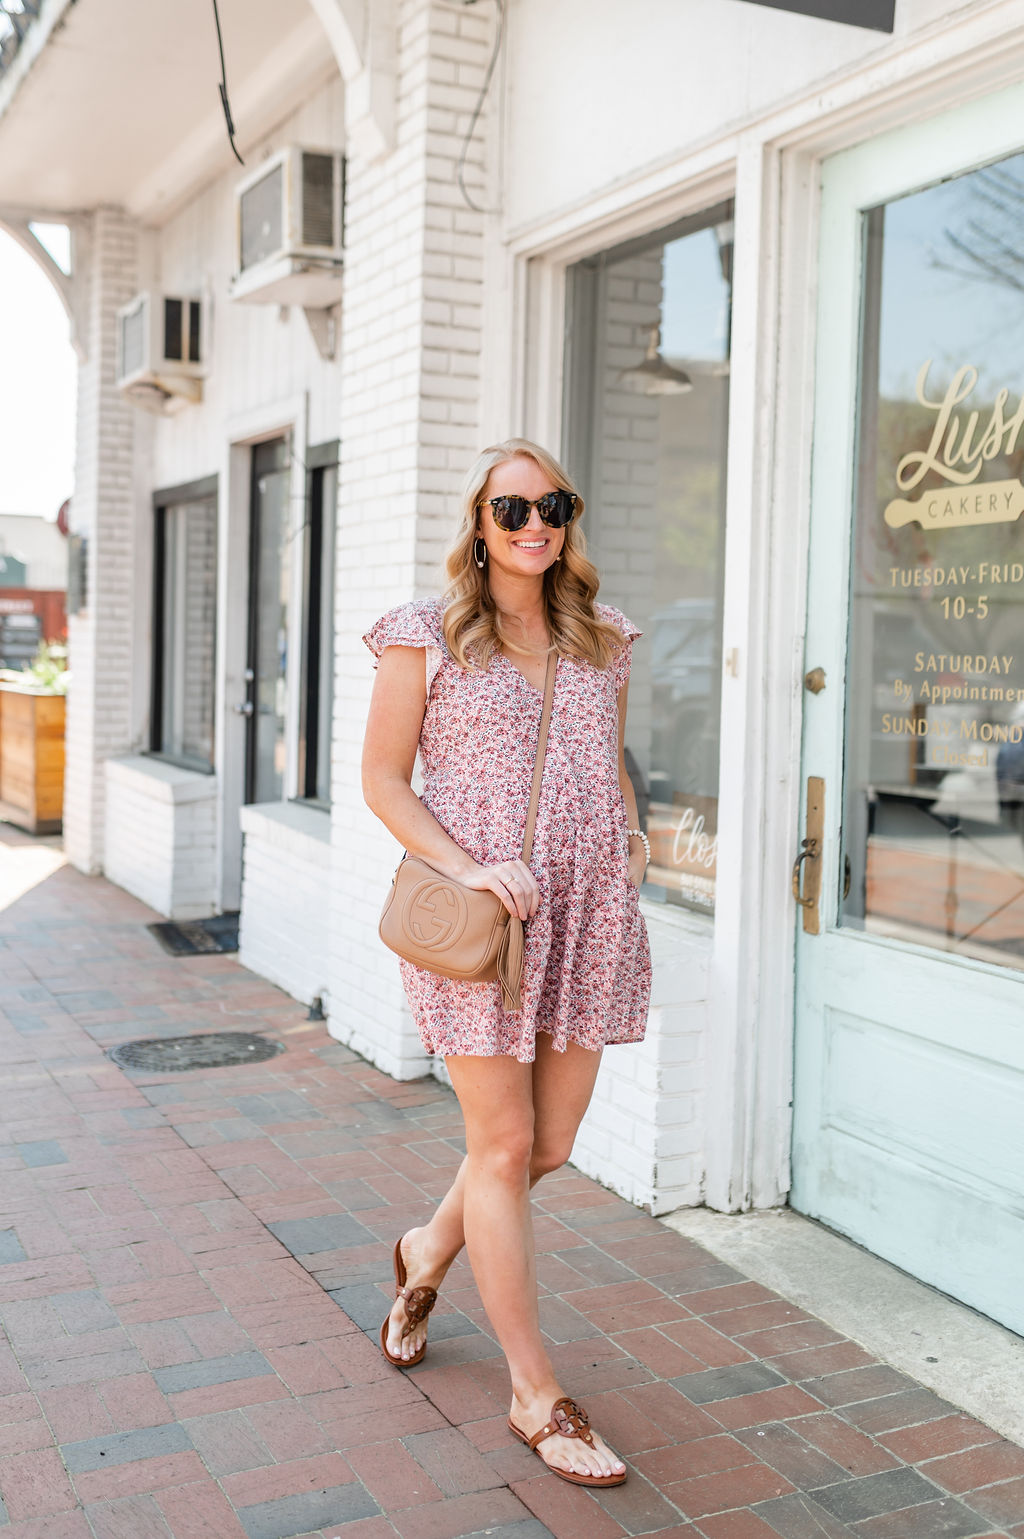 Hacks to Dress for Hot Weather, Carry a small handbag